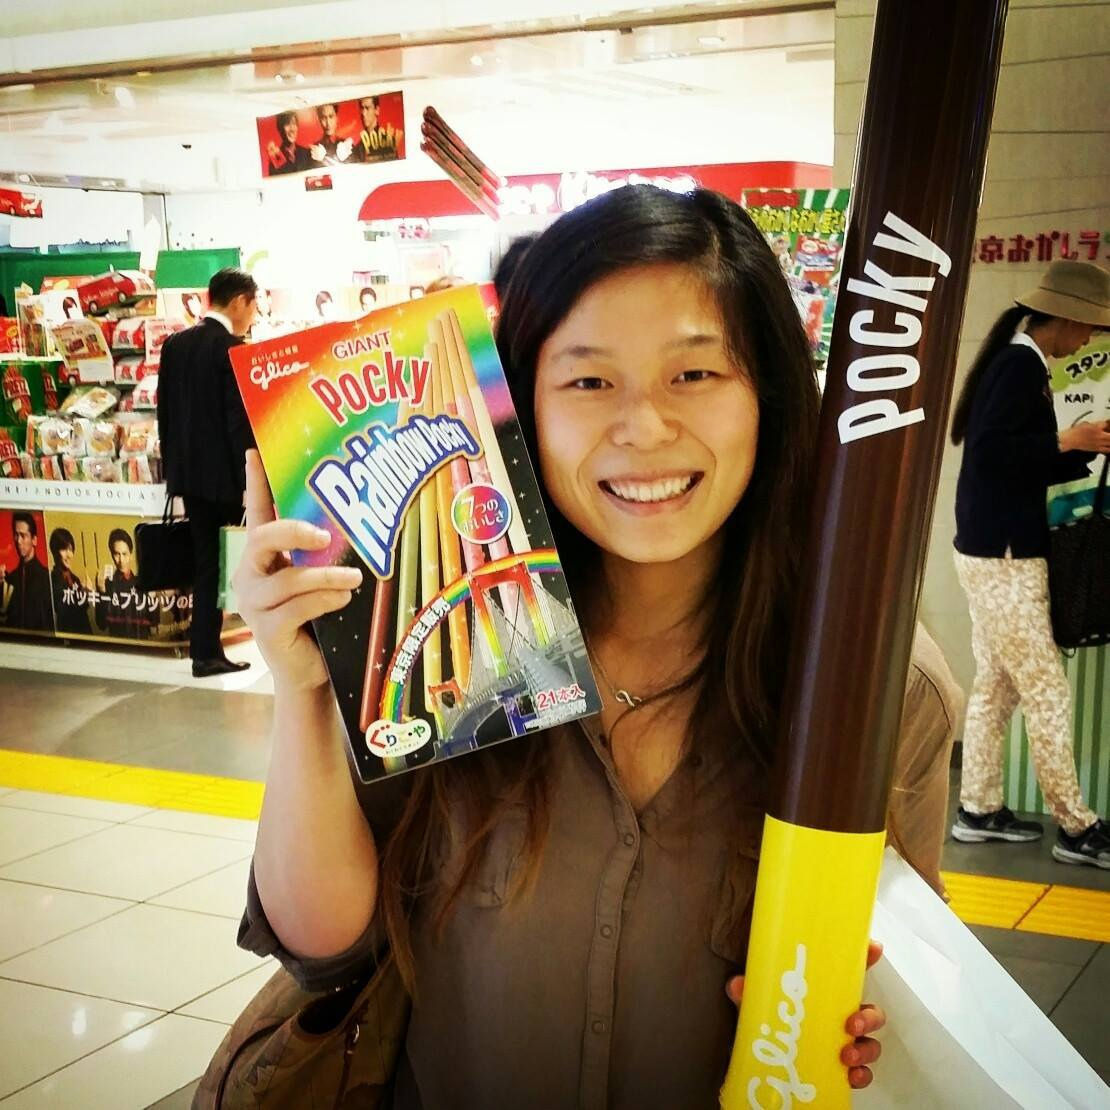 Kelly with a Giant Pocky in Japan!